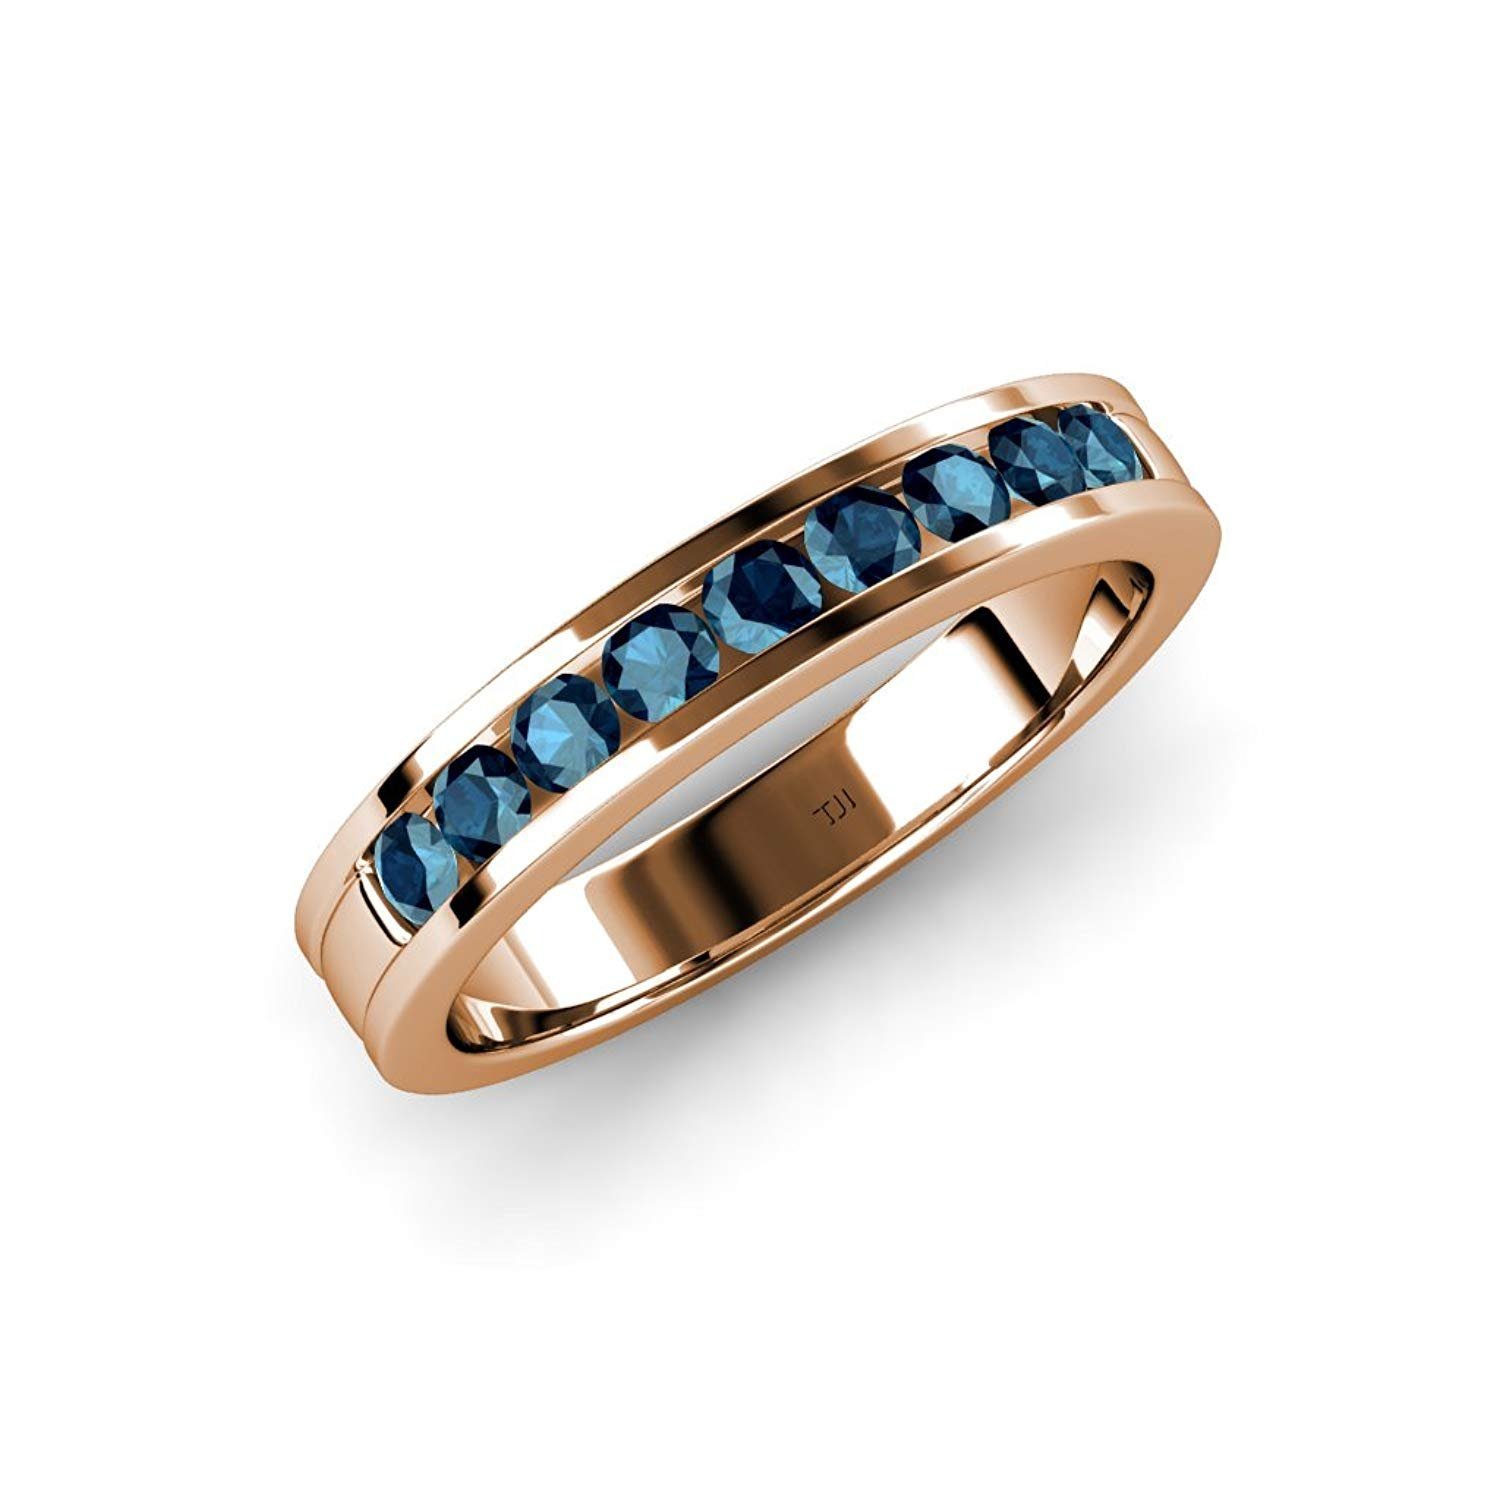 Blue Diamond 2.2mm 9 Stone Channel Set Wedding Band 0.36 Carat tw in 14K Rose Gold.size 6.0 by TriJewels